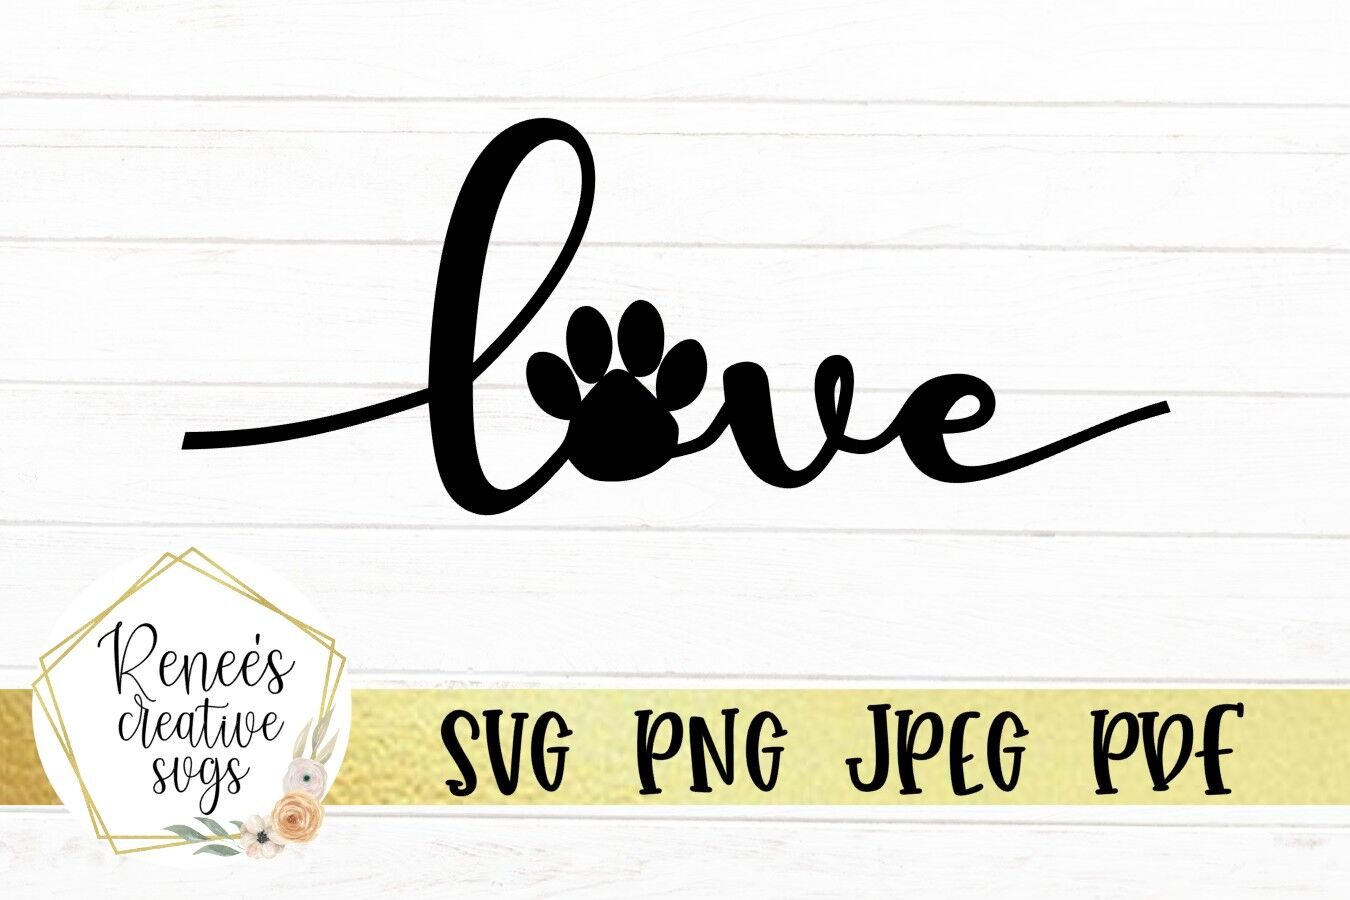 Love With Paw Print Love Svg Cutting File By Renee S Creative Svg S Thehungryjpeg Com